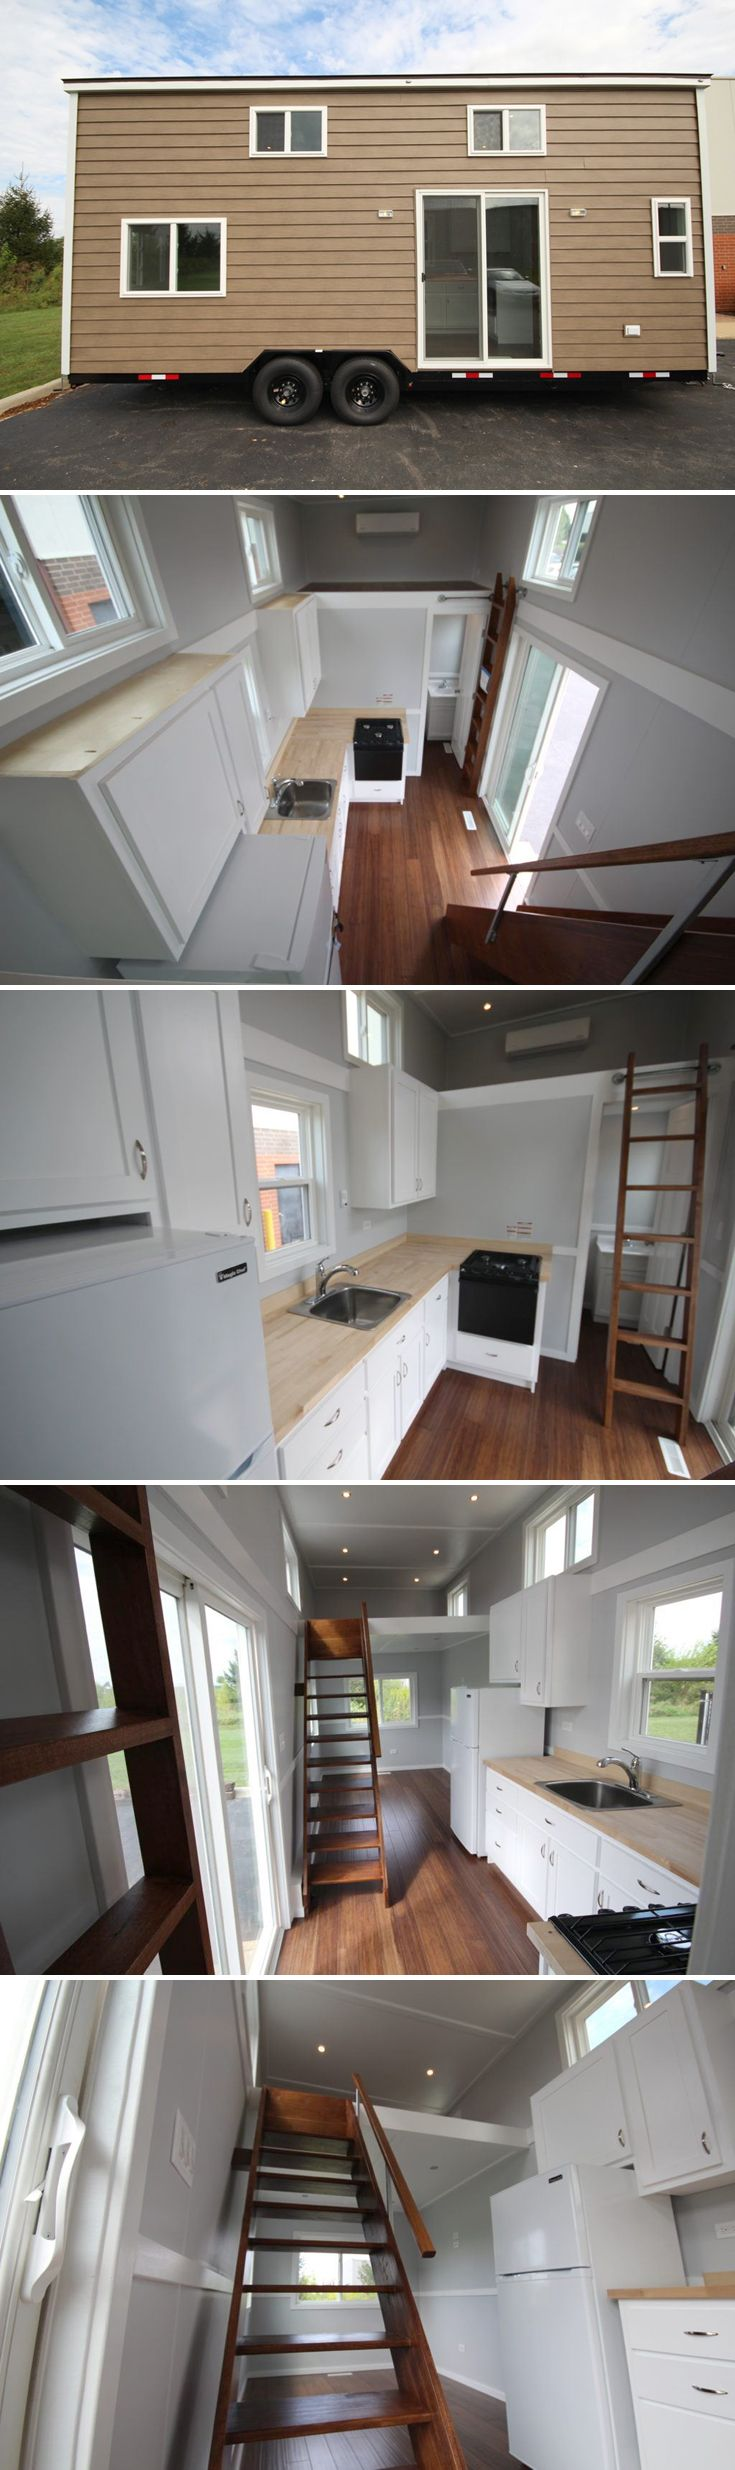 A 24' tiny house with custom all wood cabinets and bamboo flooring. Steel siding and steel stud construction make the house lighter and easier to tow.